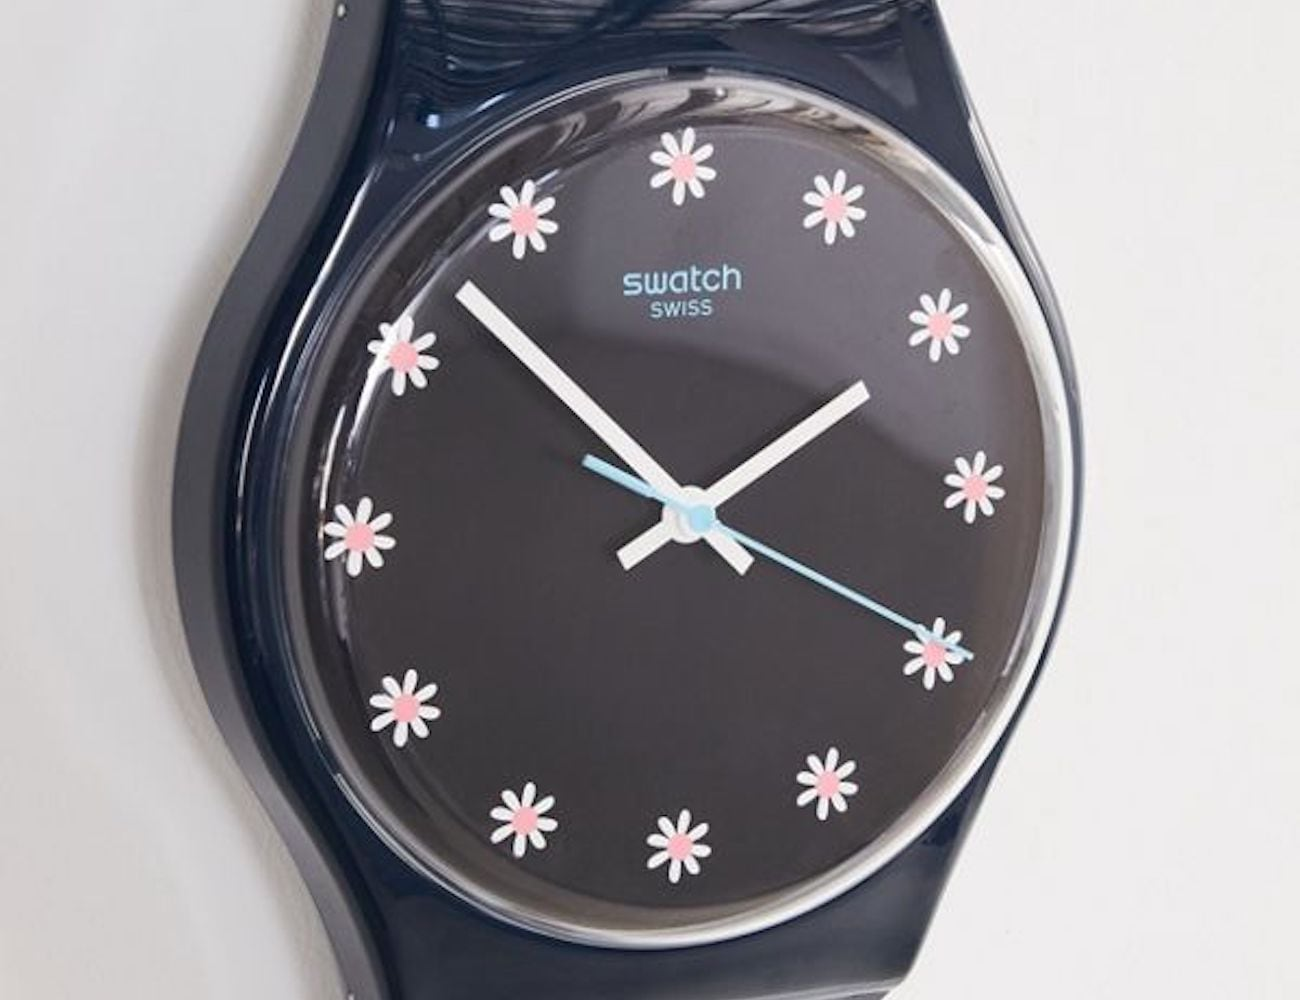 Swatch Maxi Wall Clocks are taller than most people